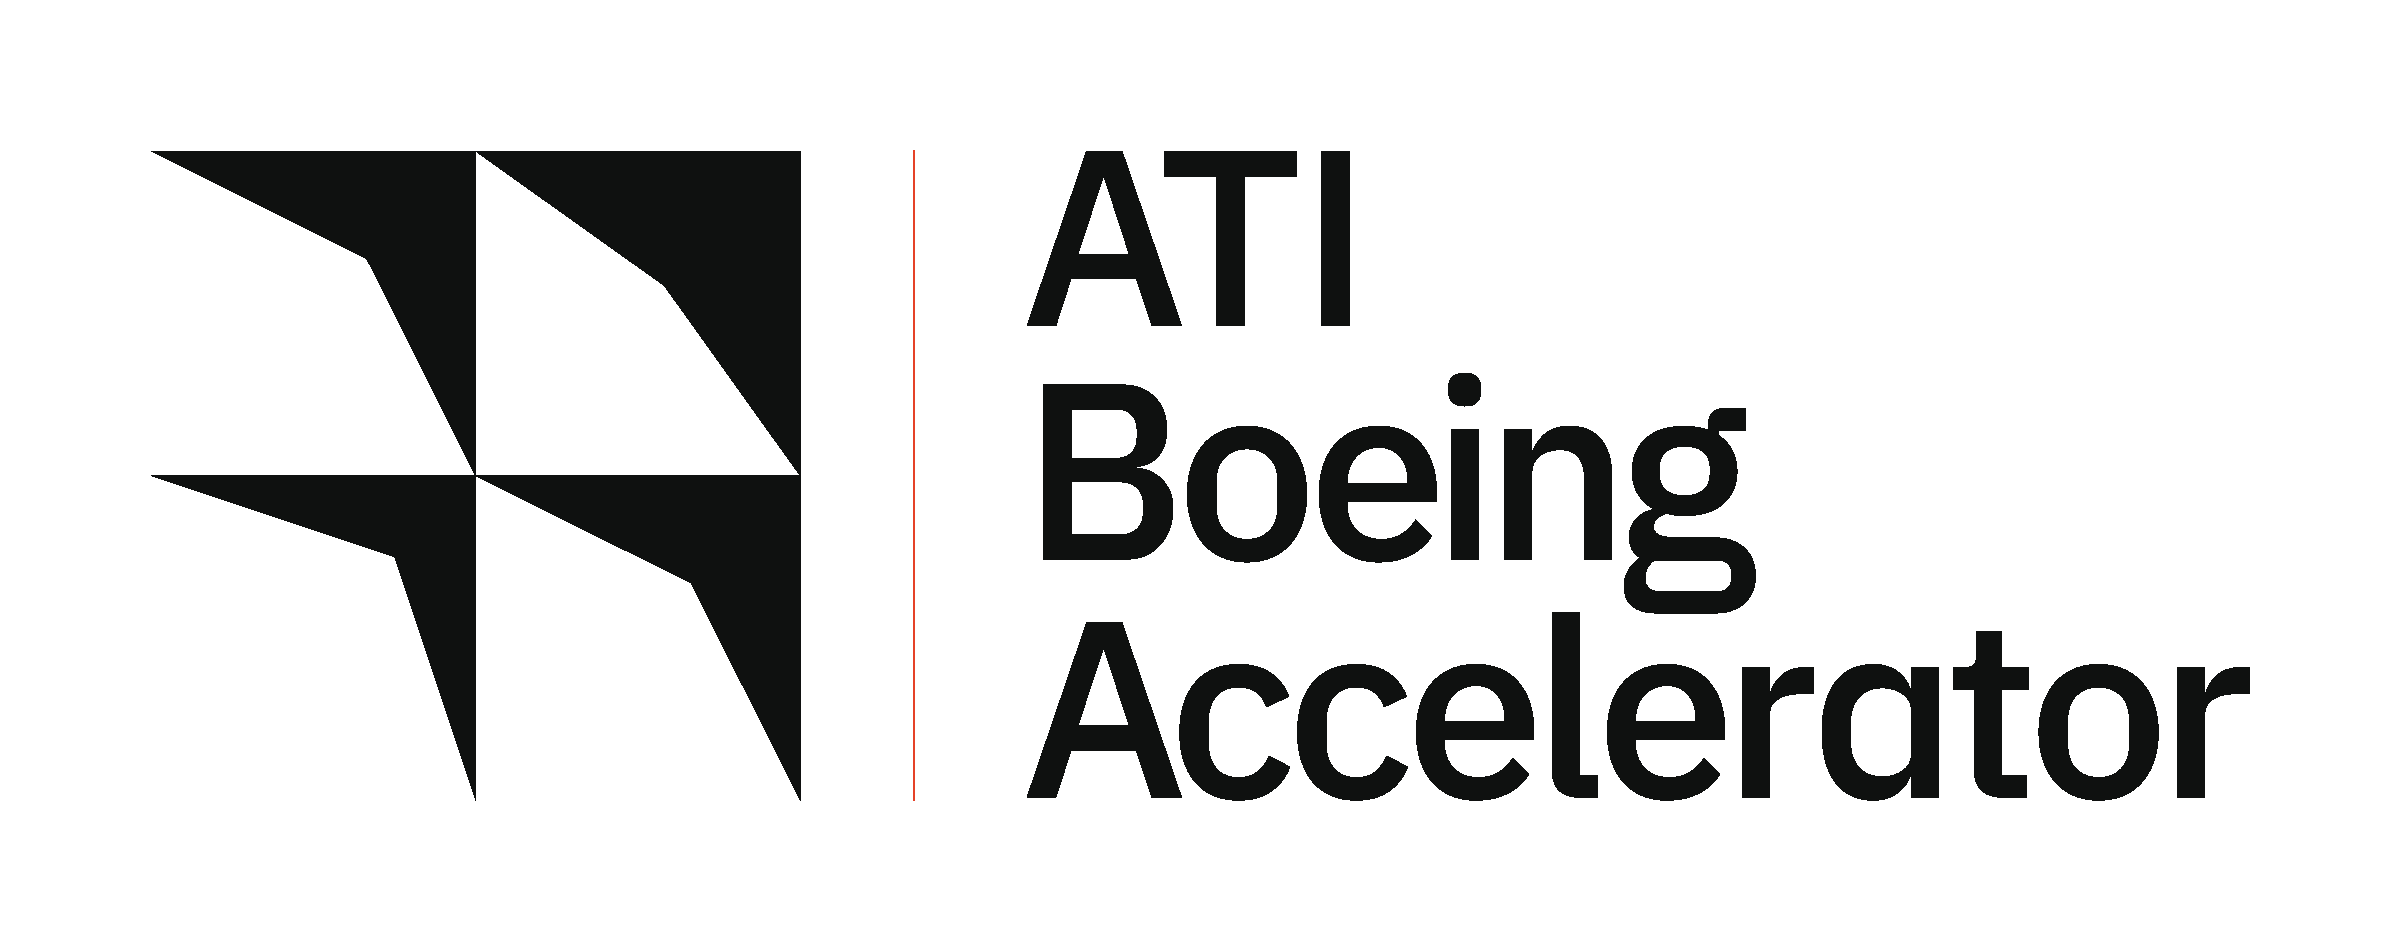 My first month at the ATI Boeing Accelerator | by Ksenia Kurileva | UK  Aerospace Accelerated | Medium